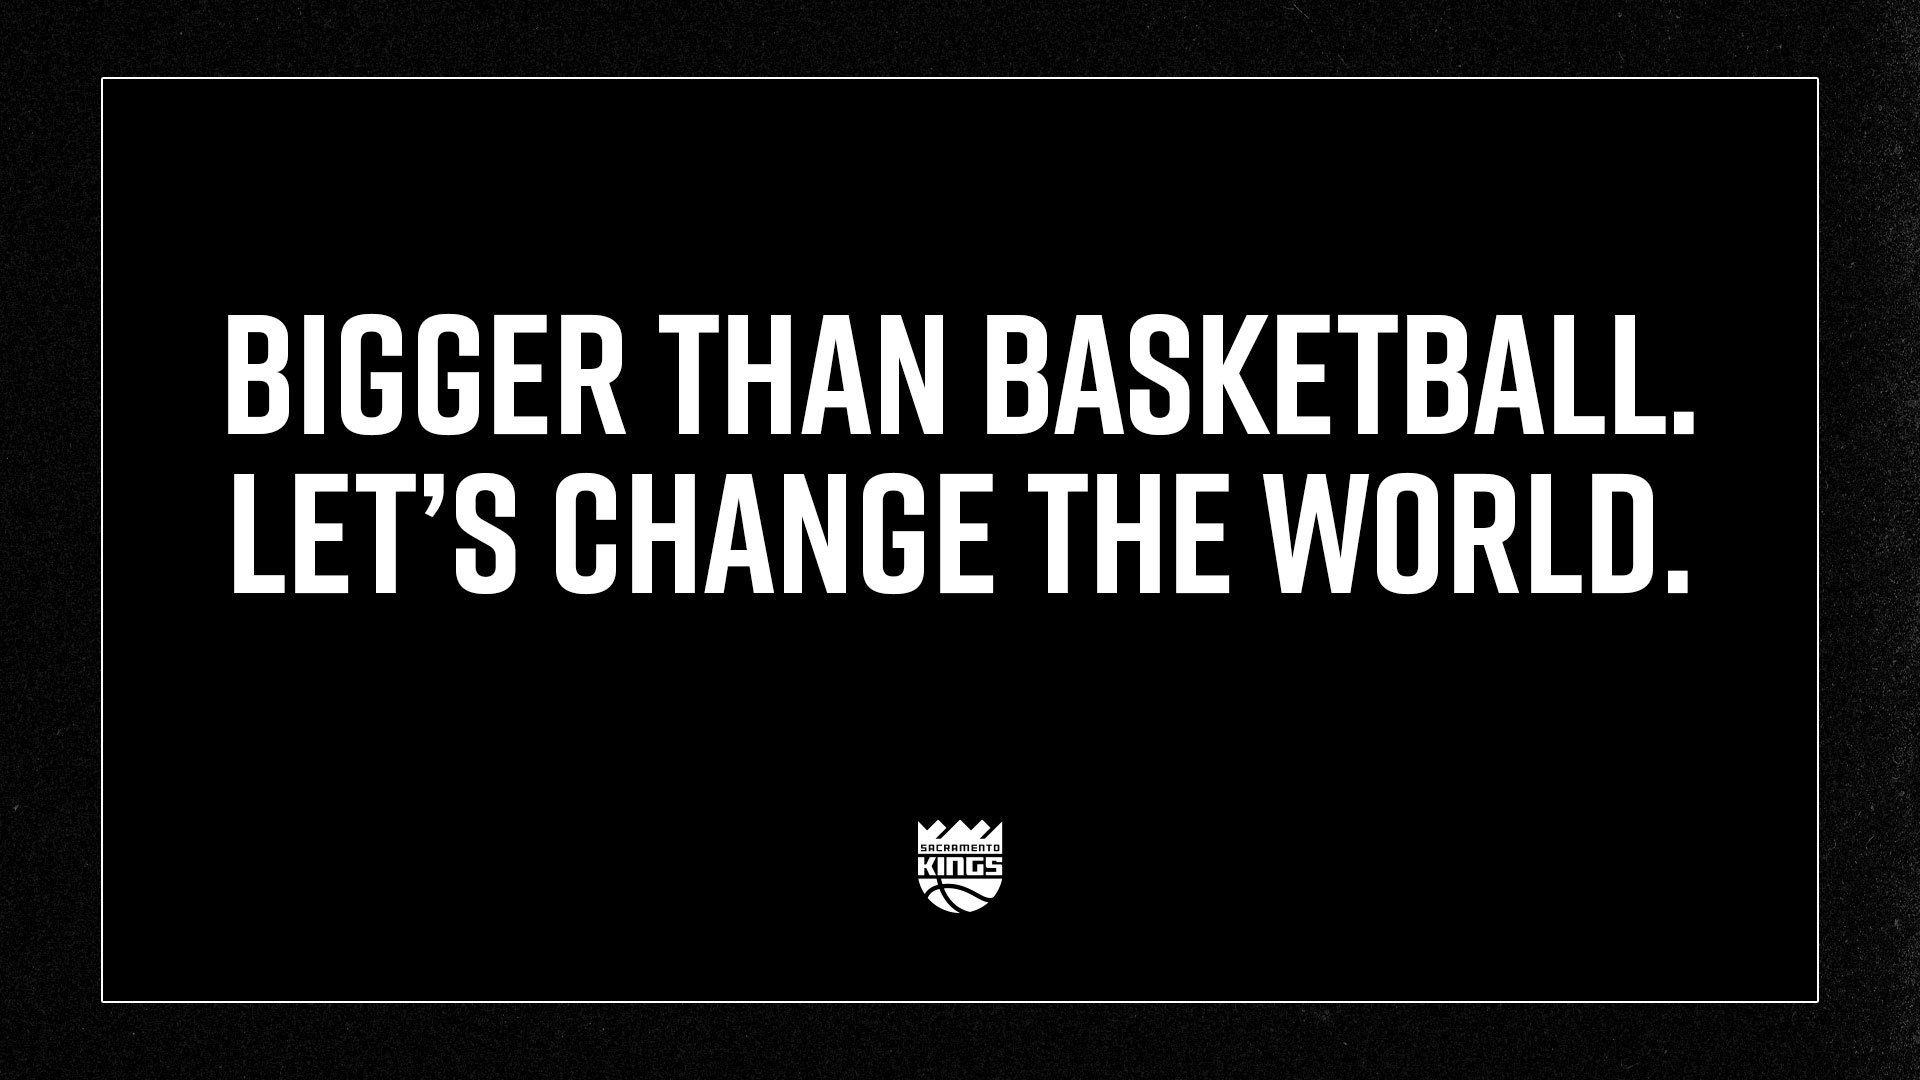 Bigger Than Basketball. Let's Change the World.